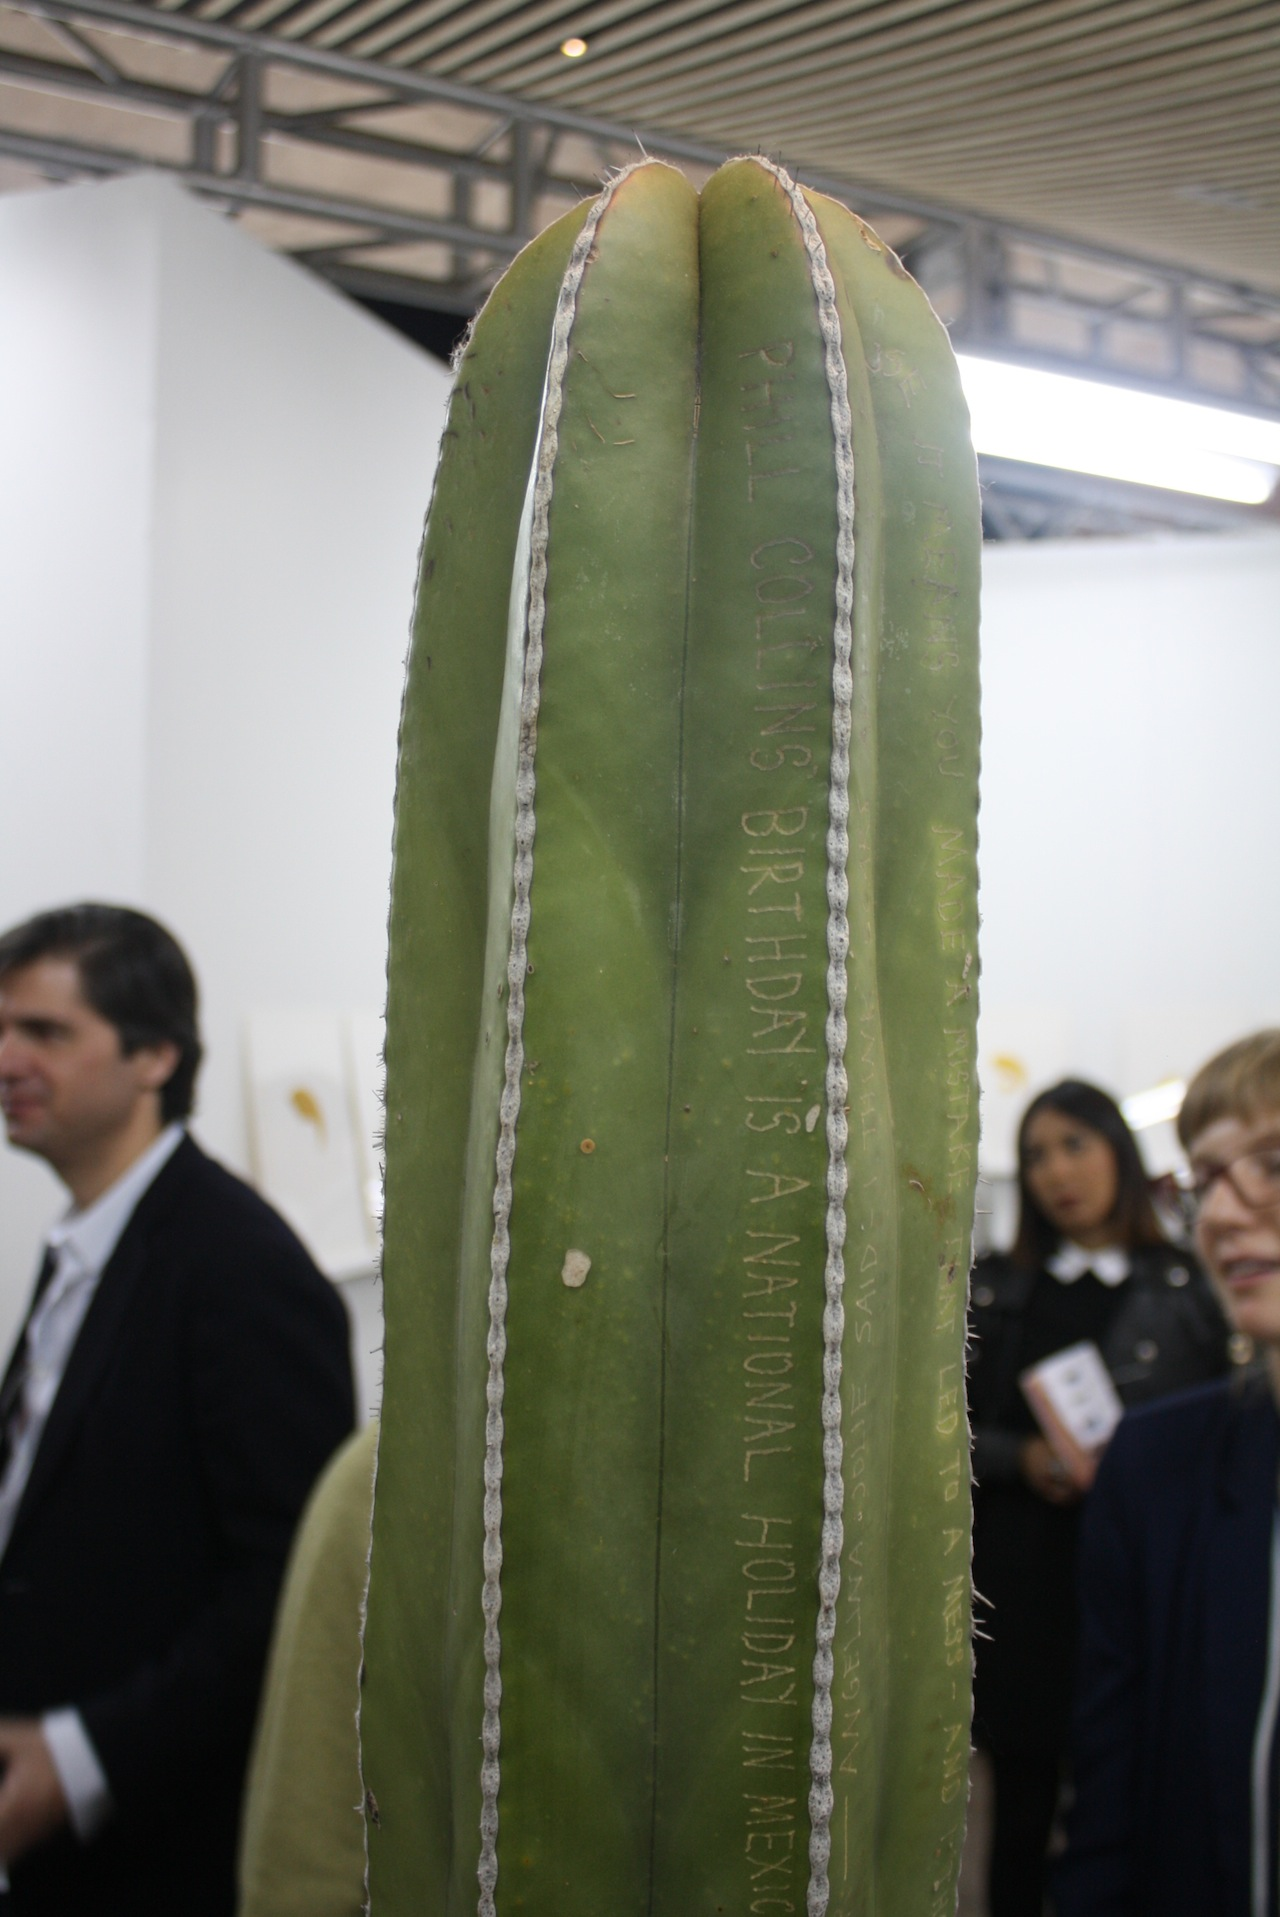 Tattooed cactus by There There at Regina Re's booth